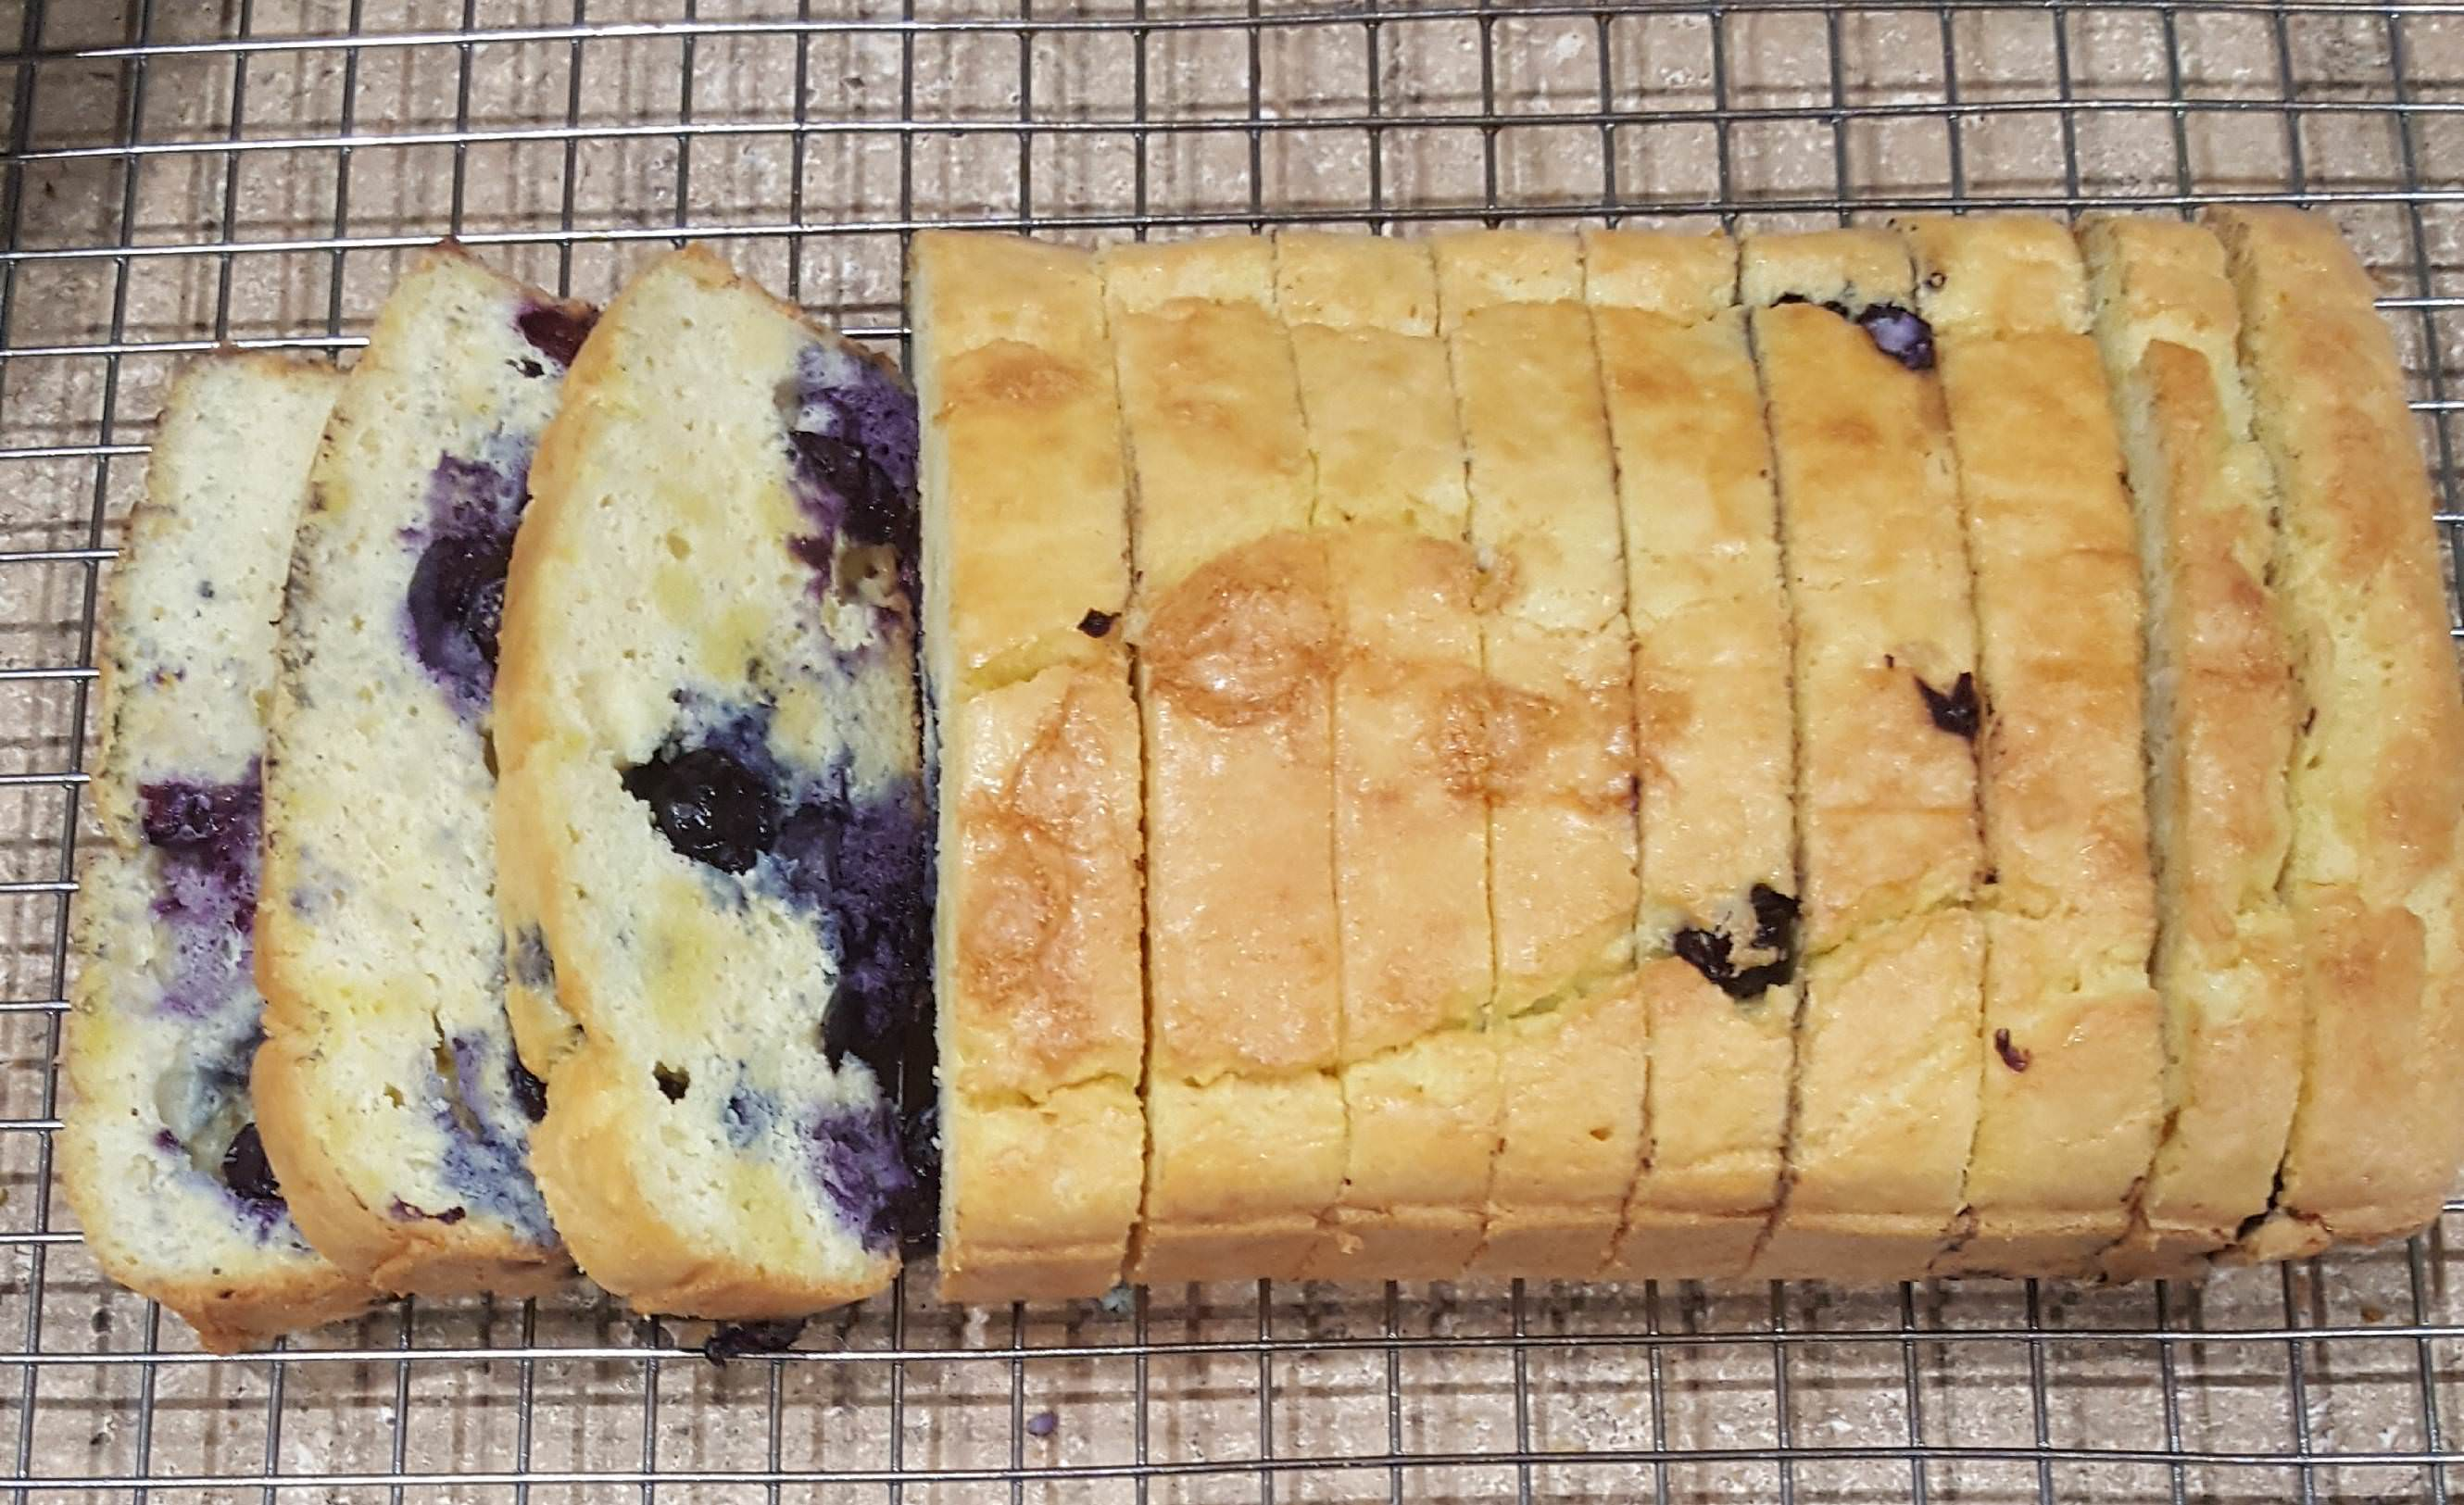 Blueberry Bread 1.1g Net Carb